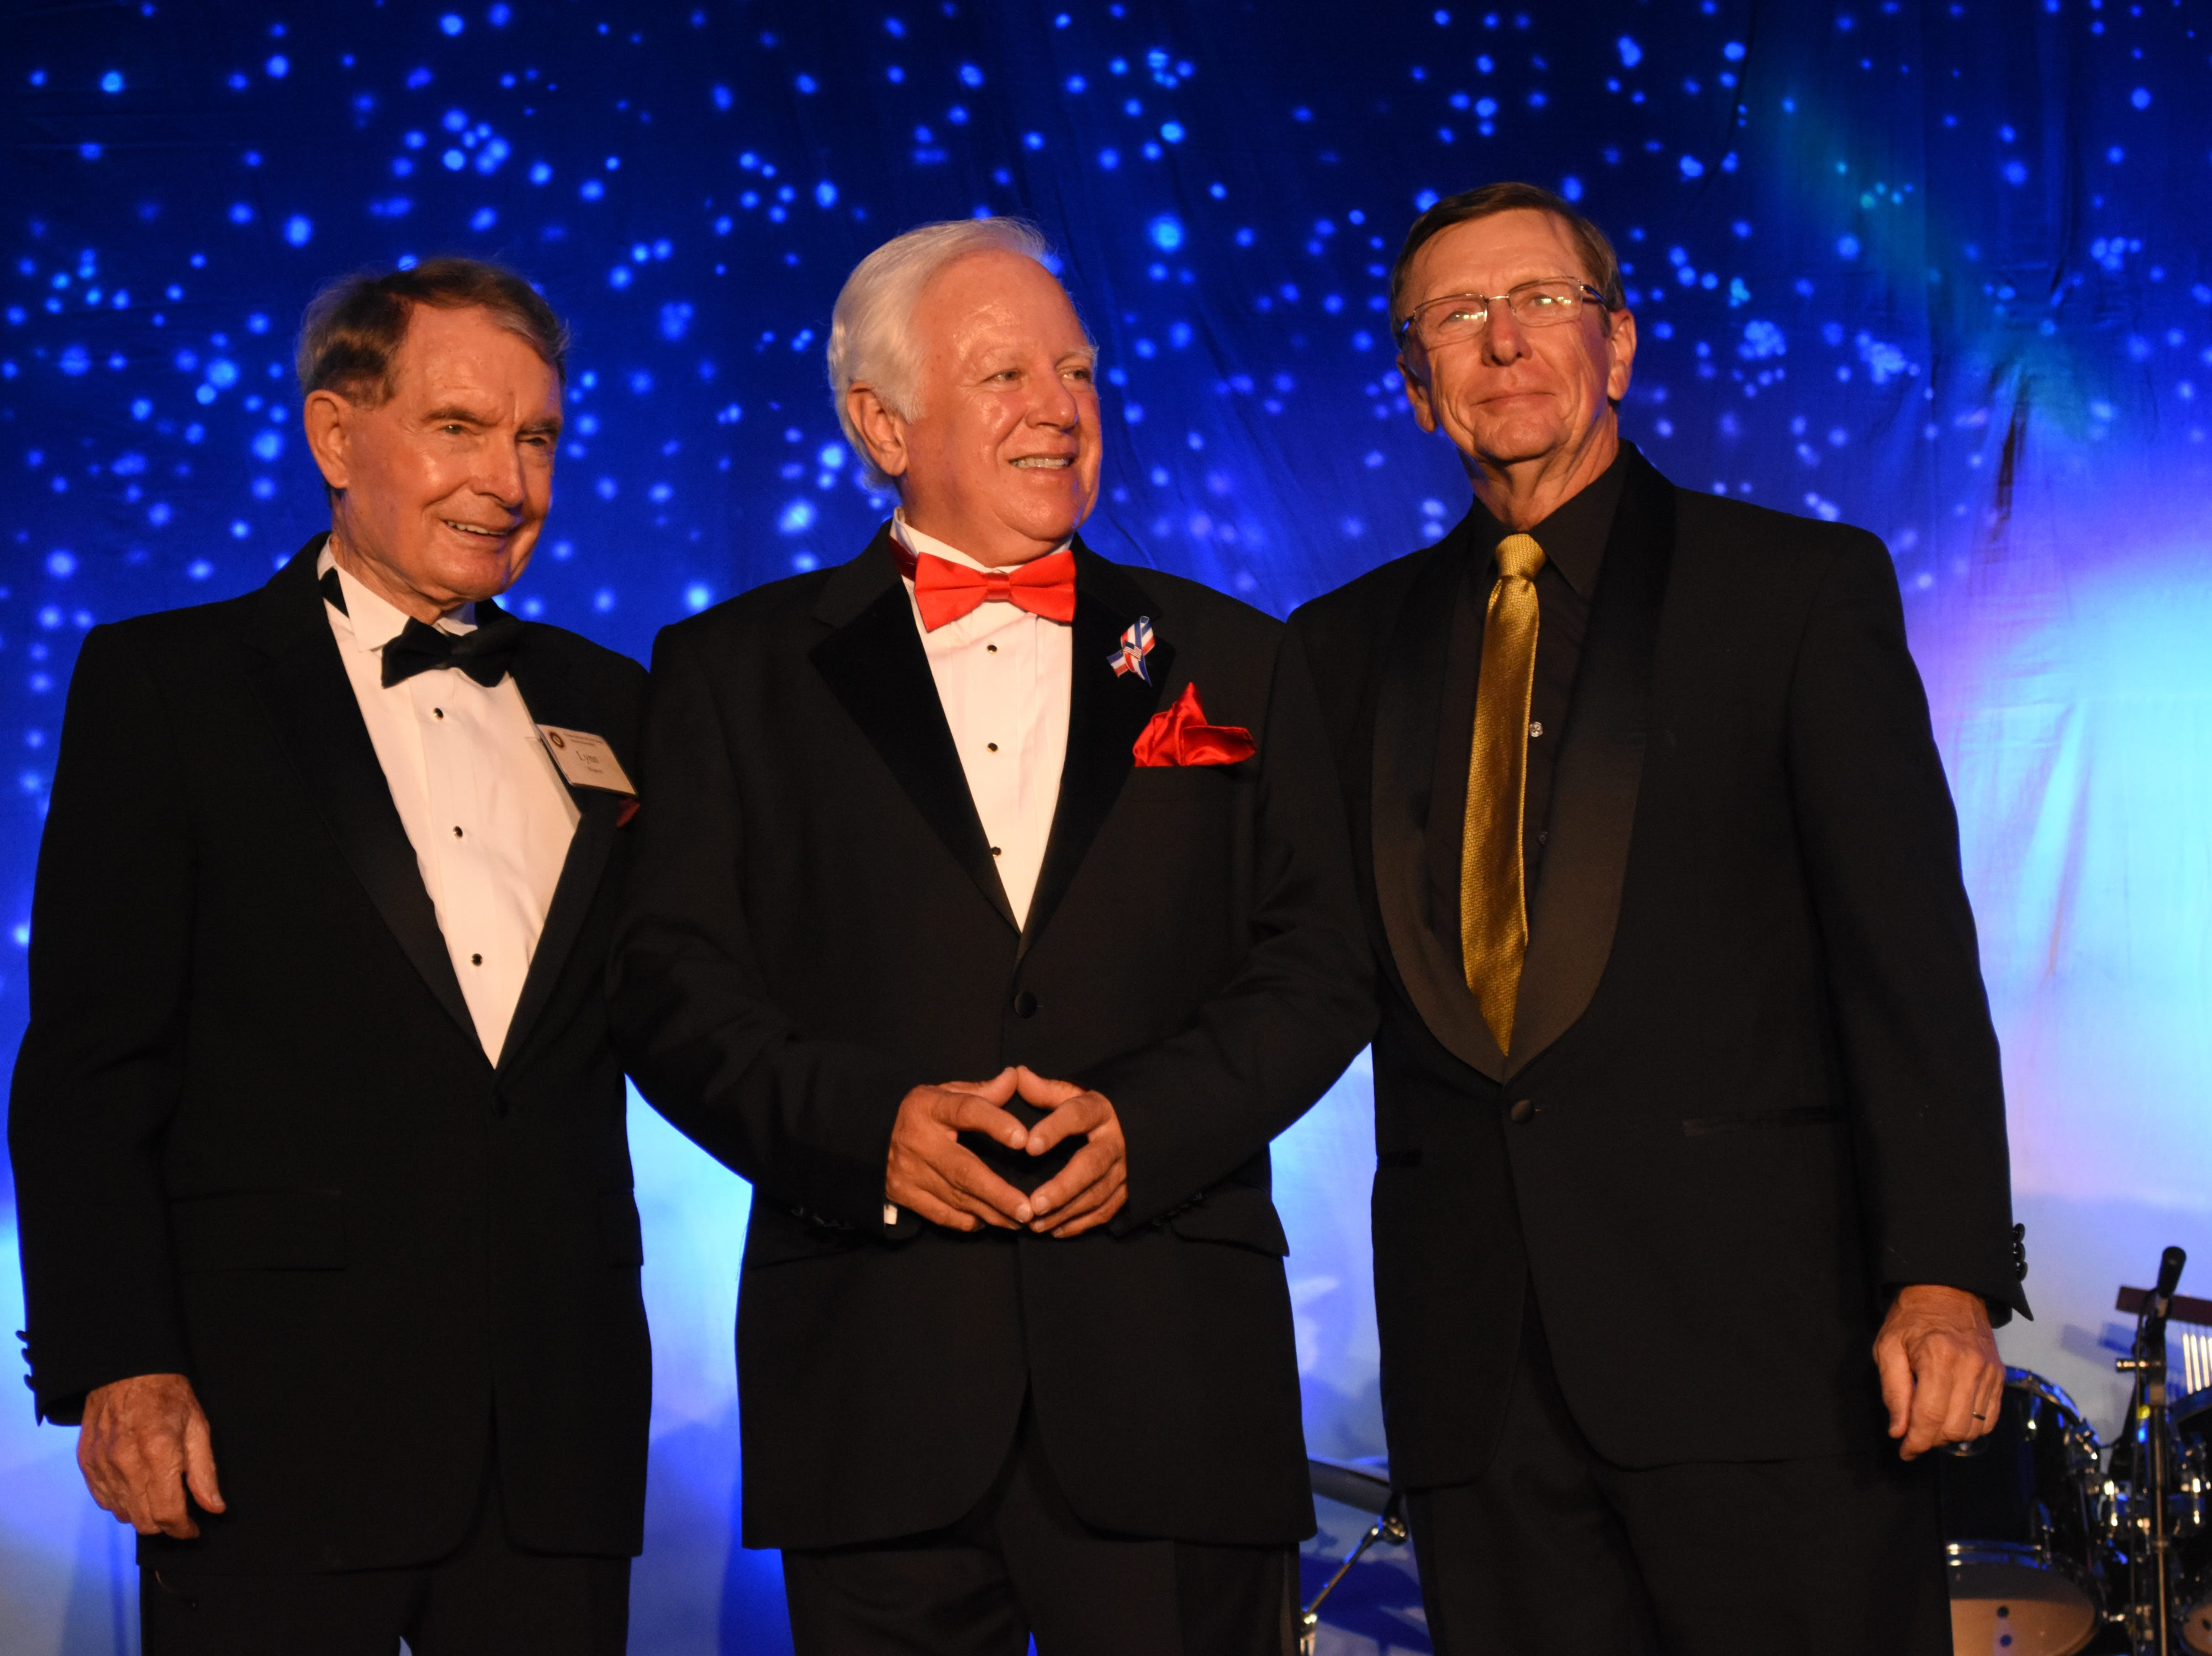 Florida Tech's third president, Dr. Lynn E. Weaver; fourth president, Dr. Anthony J. Catanese; and fifth and current president, Dr. T. Dwayne McCay, stand together at Florida Tech's 60th Anniversary Homecoming Gala Oct. 13, 2018, at the Clemente Center.